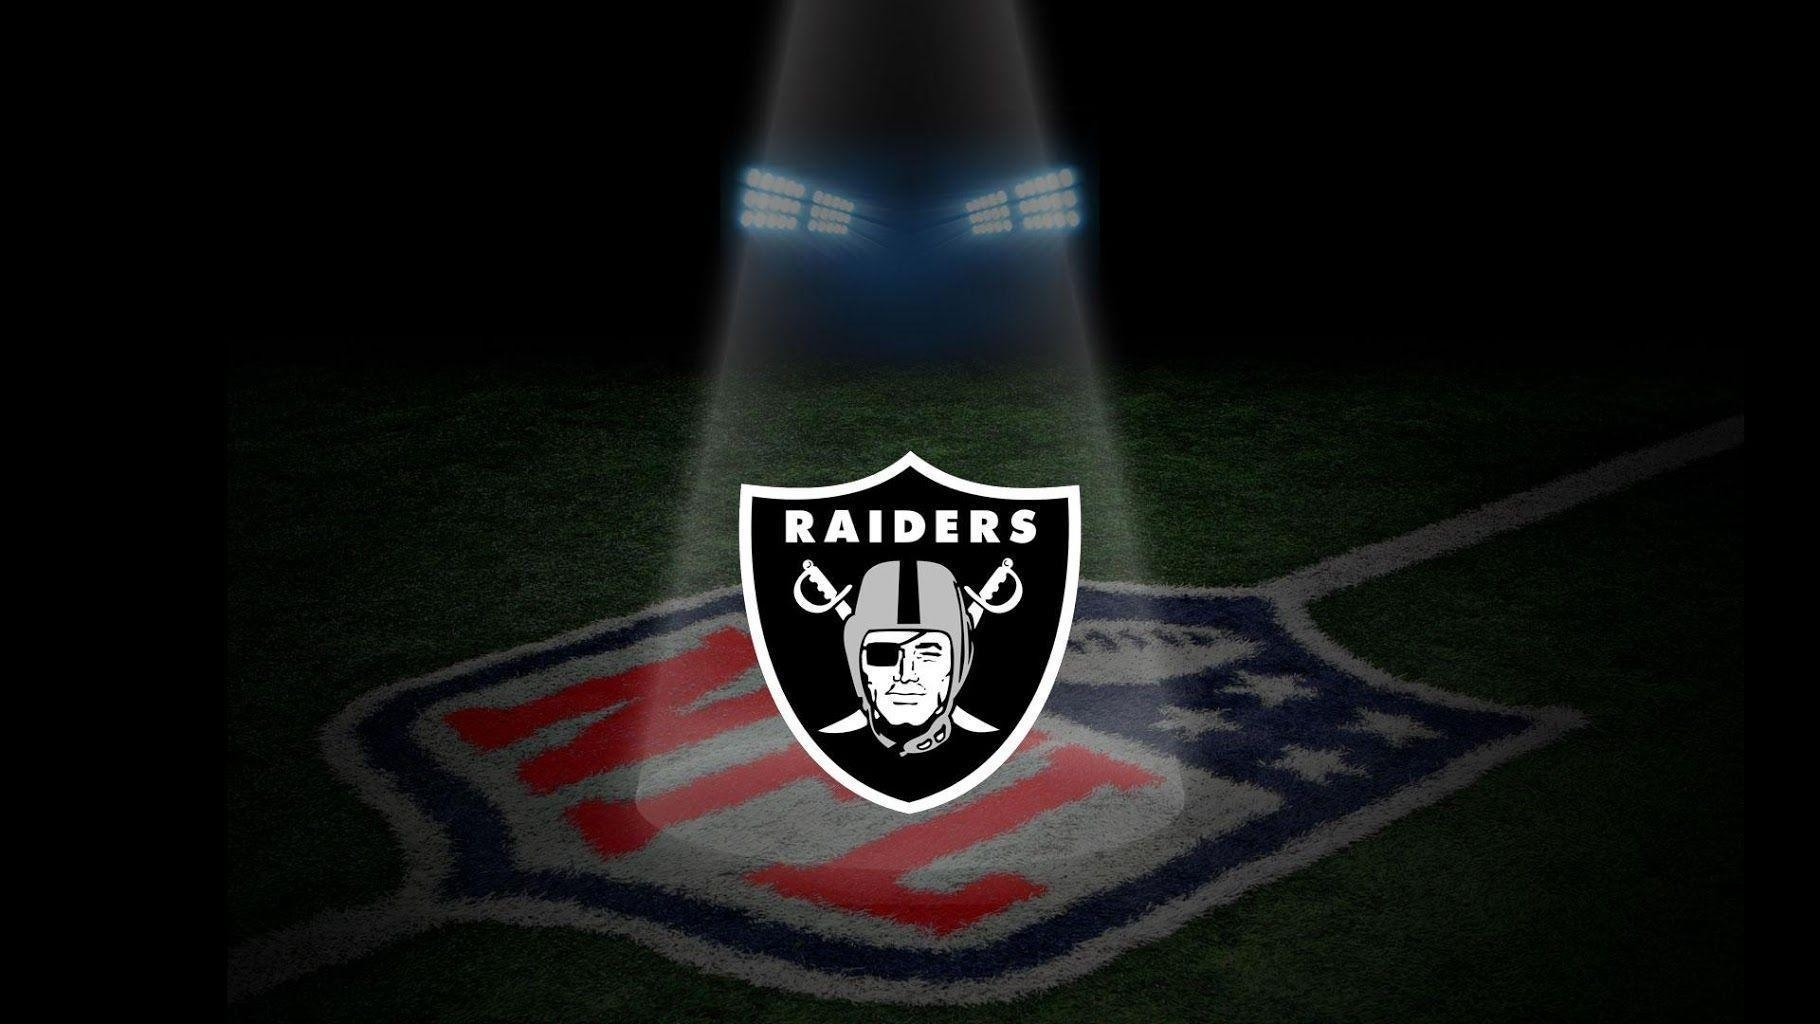 Title : oakland raiders wallpapers - wallpaper cave. Dimension : 1820 x 1024. File Type : JPG/JPEG